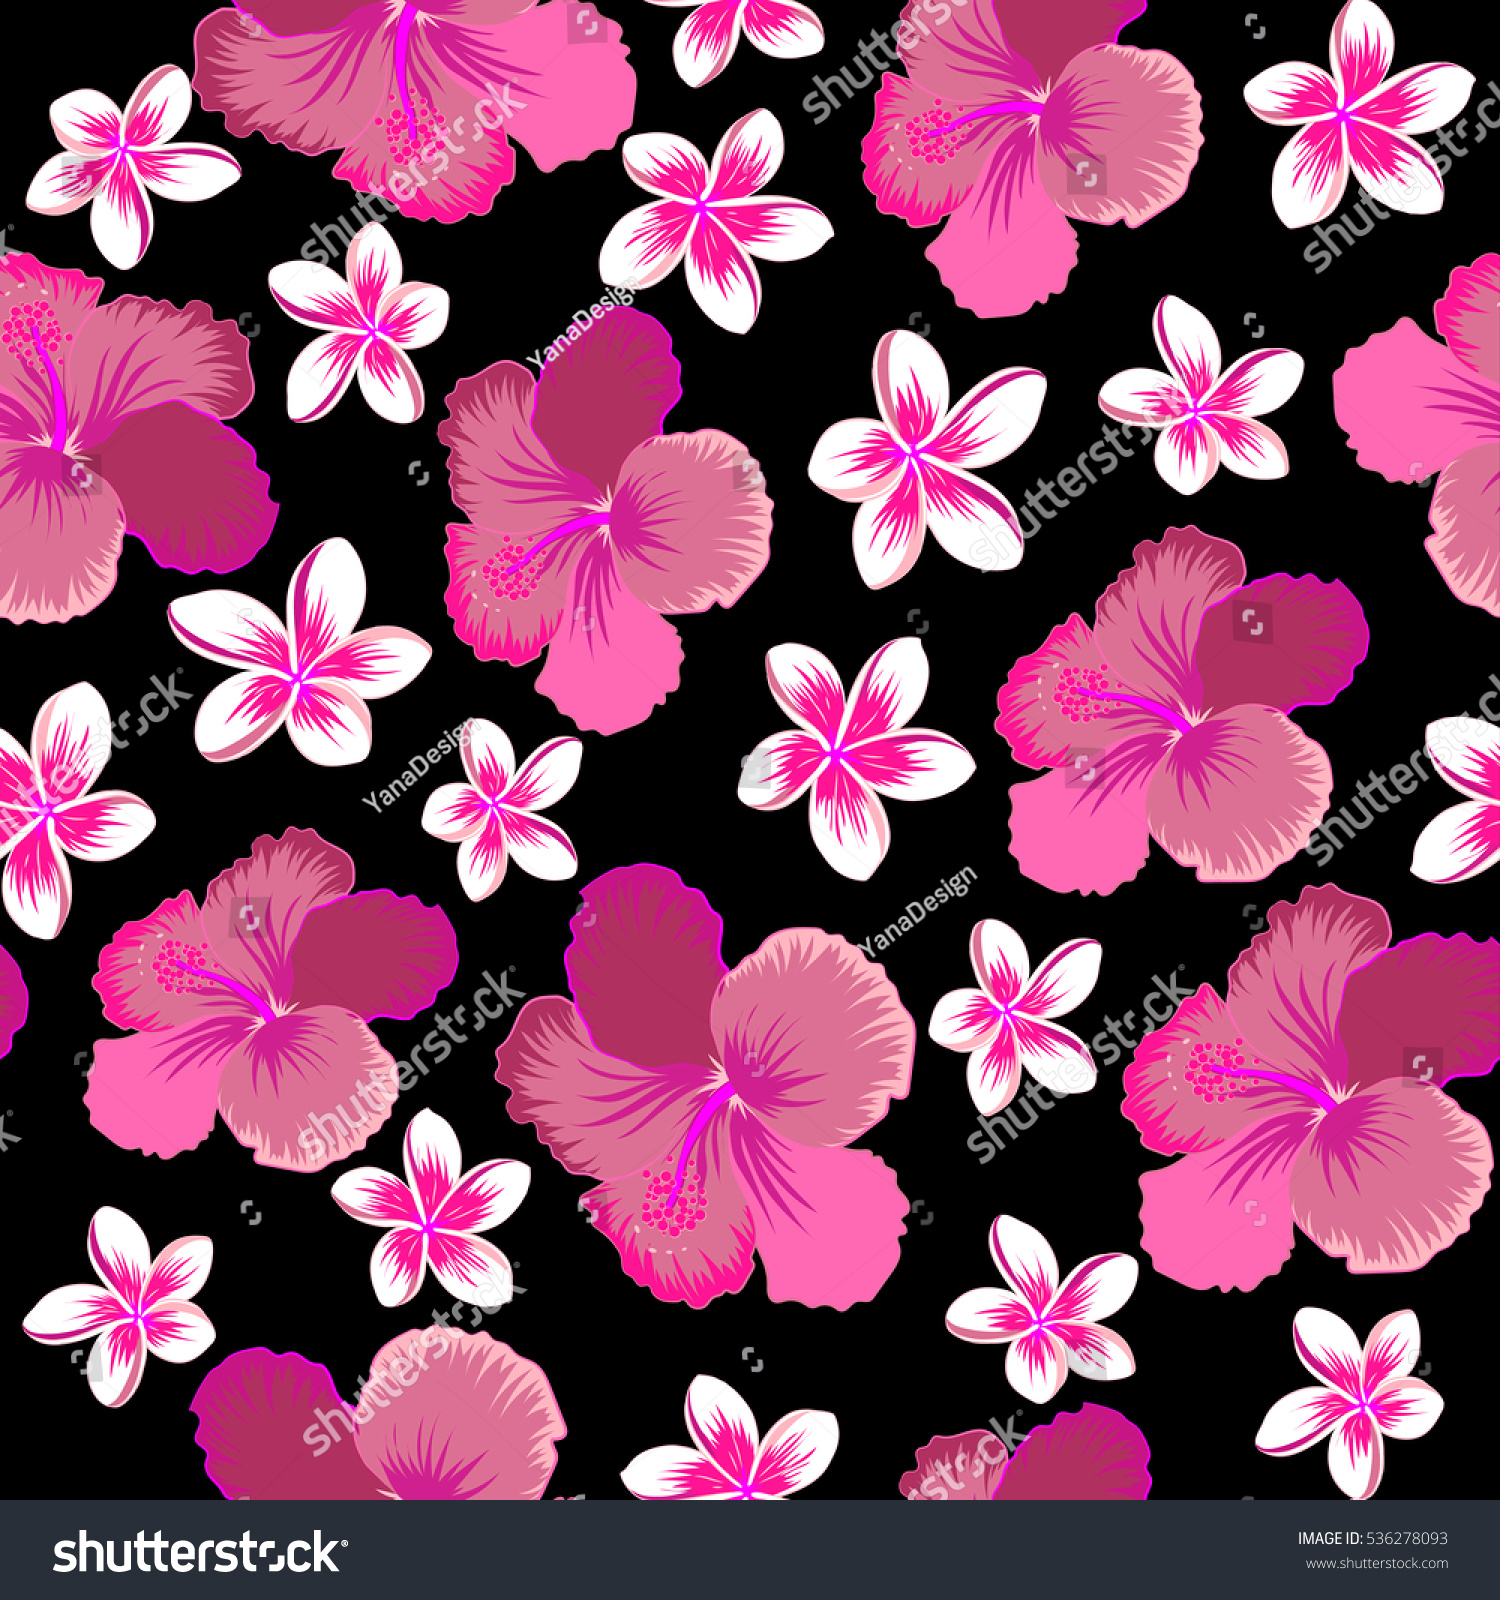 Hibiscus Flower Seamless Pattern In Neutral Pink And Magenta Colors